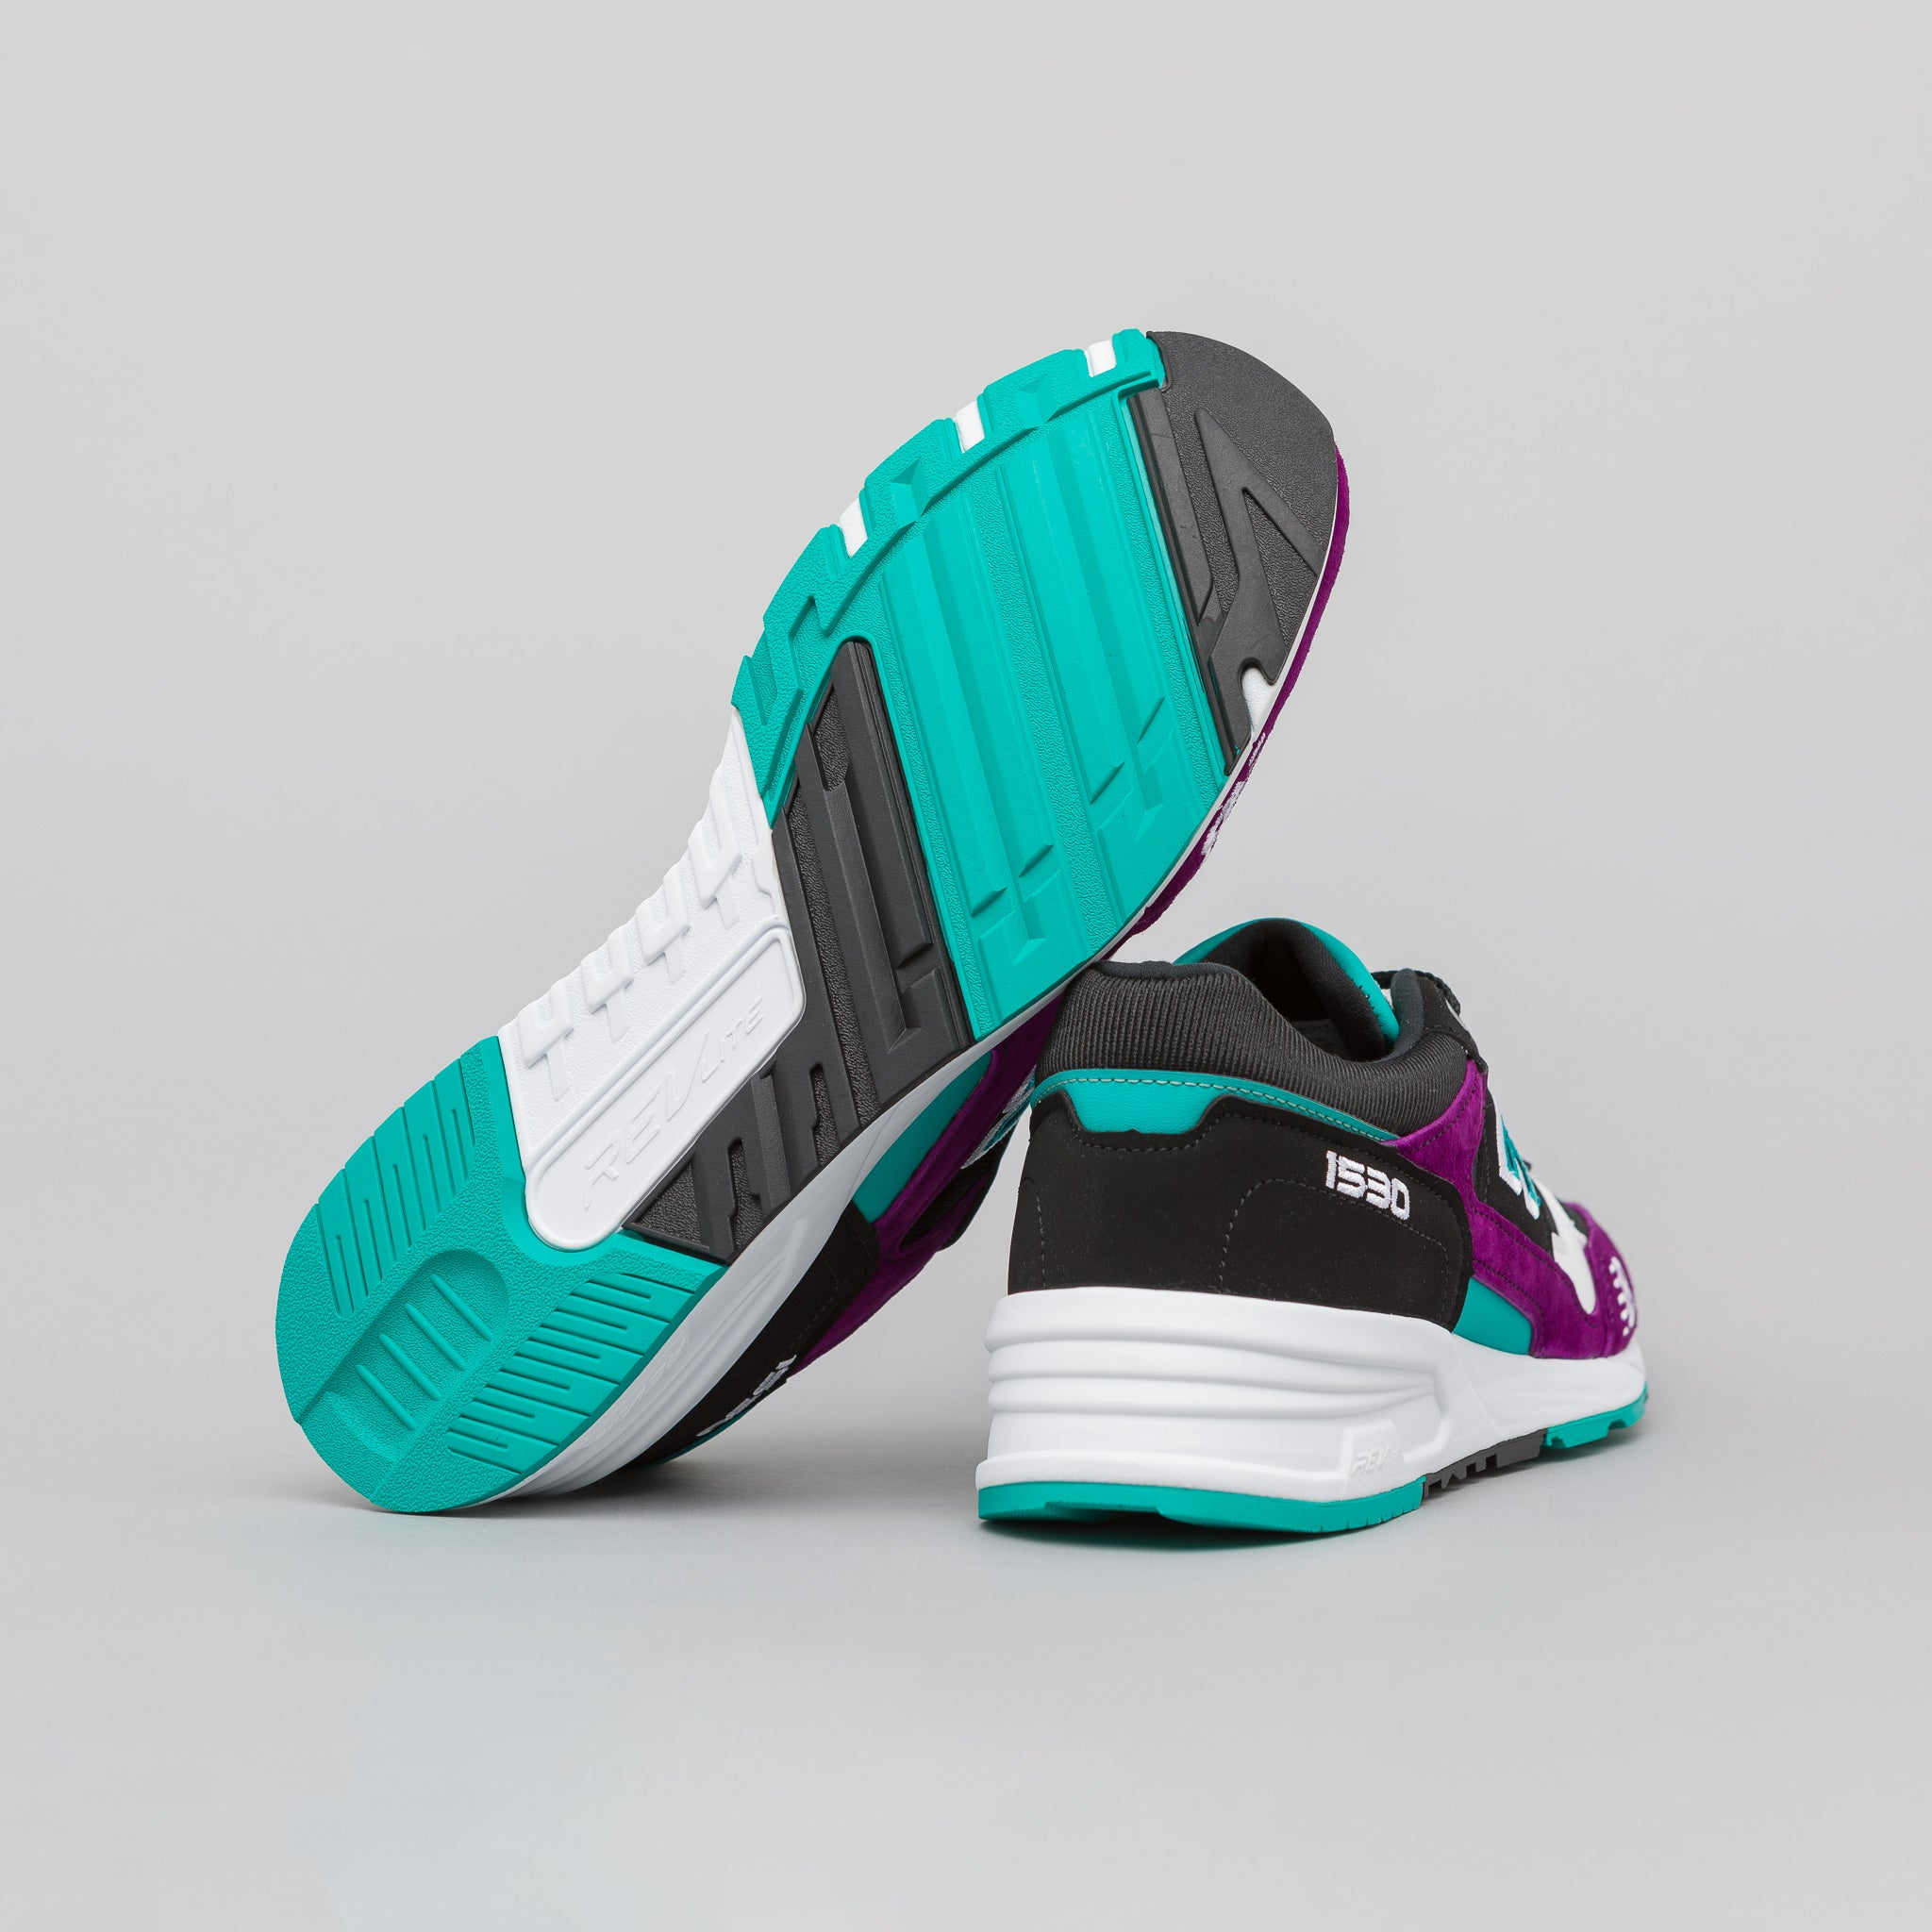 M1530KPT in Purple/Black/Teal